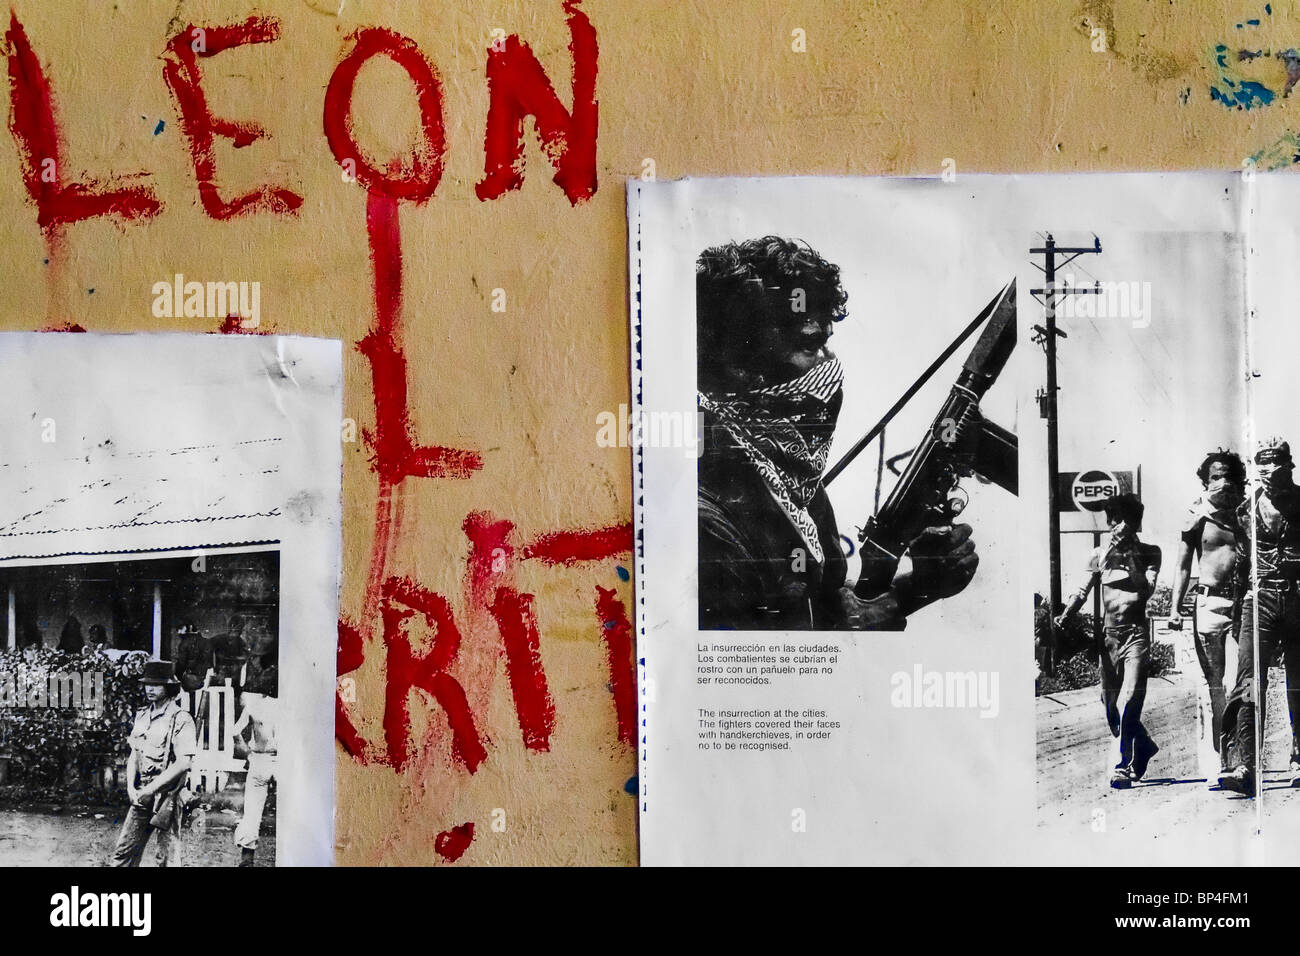 A revolutionary writing together with historical photos on the wall of the Sandinista museum in Leon, Nicaragua. - Stock Image